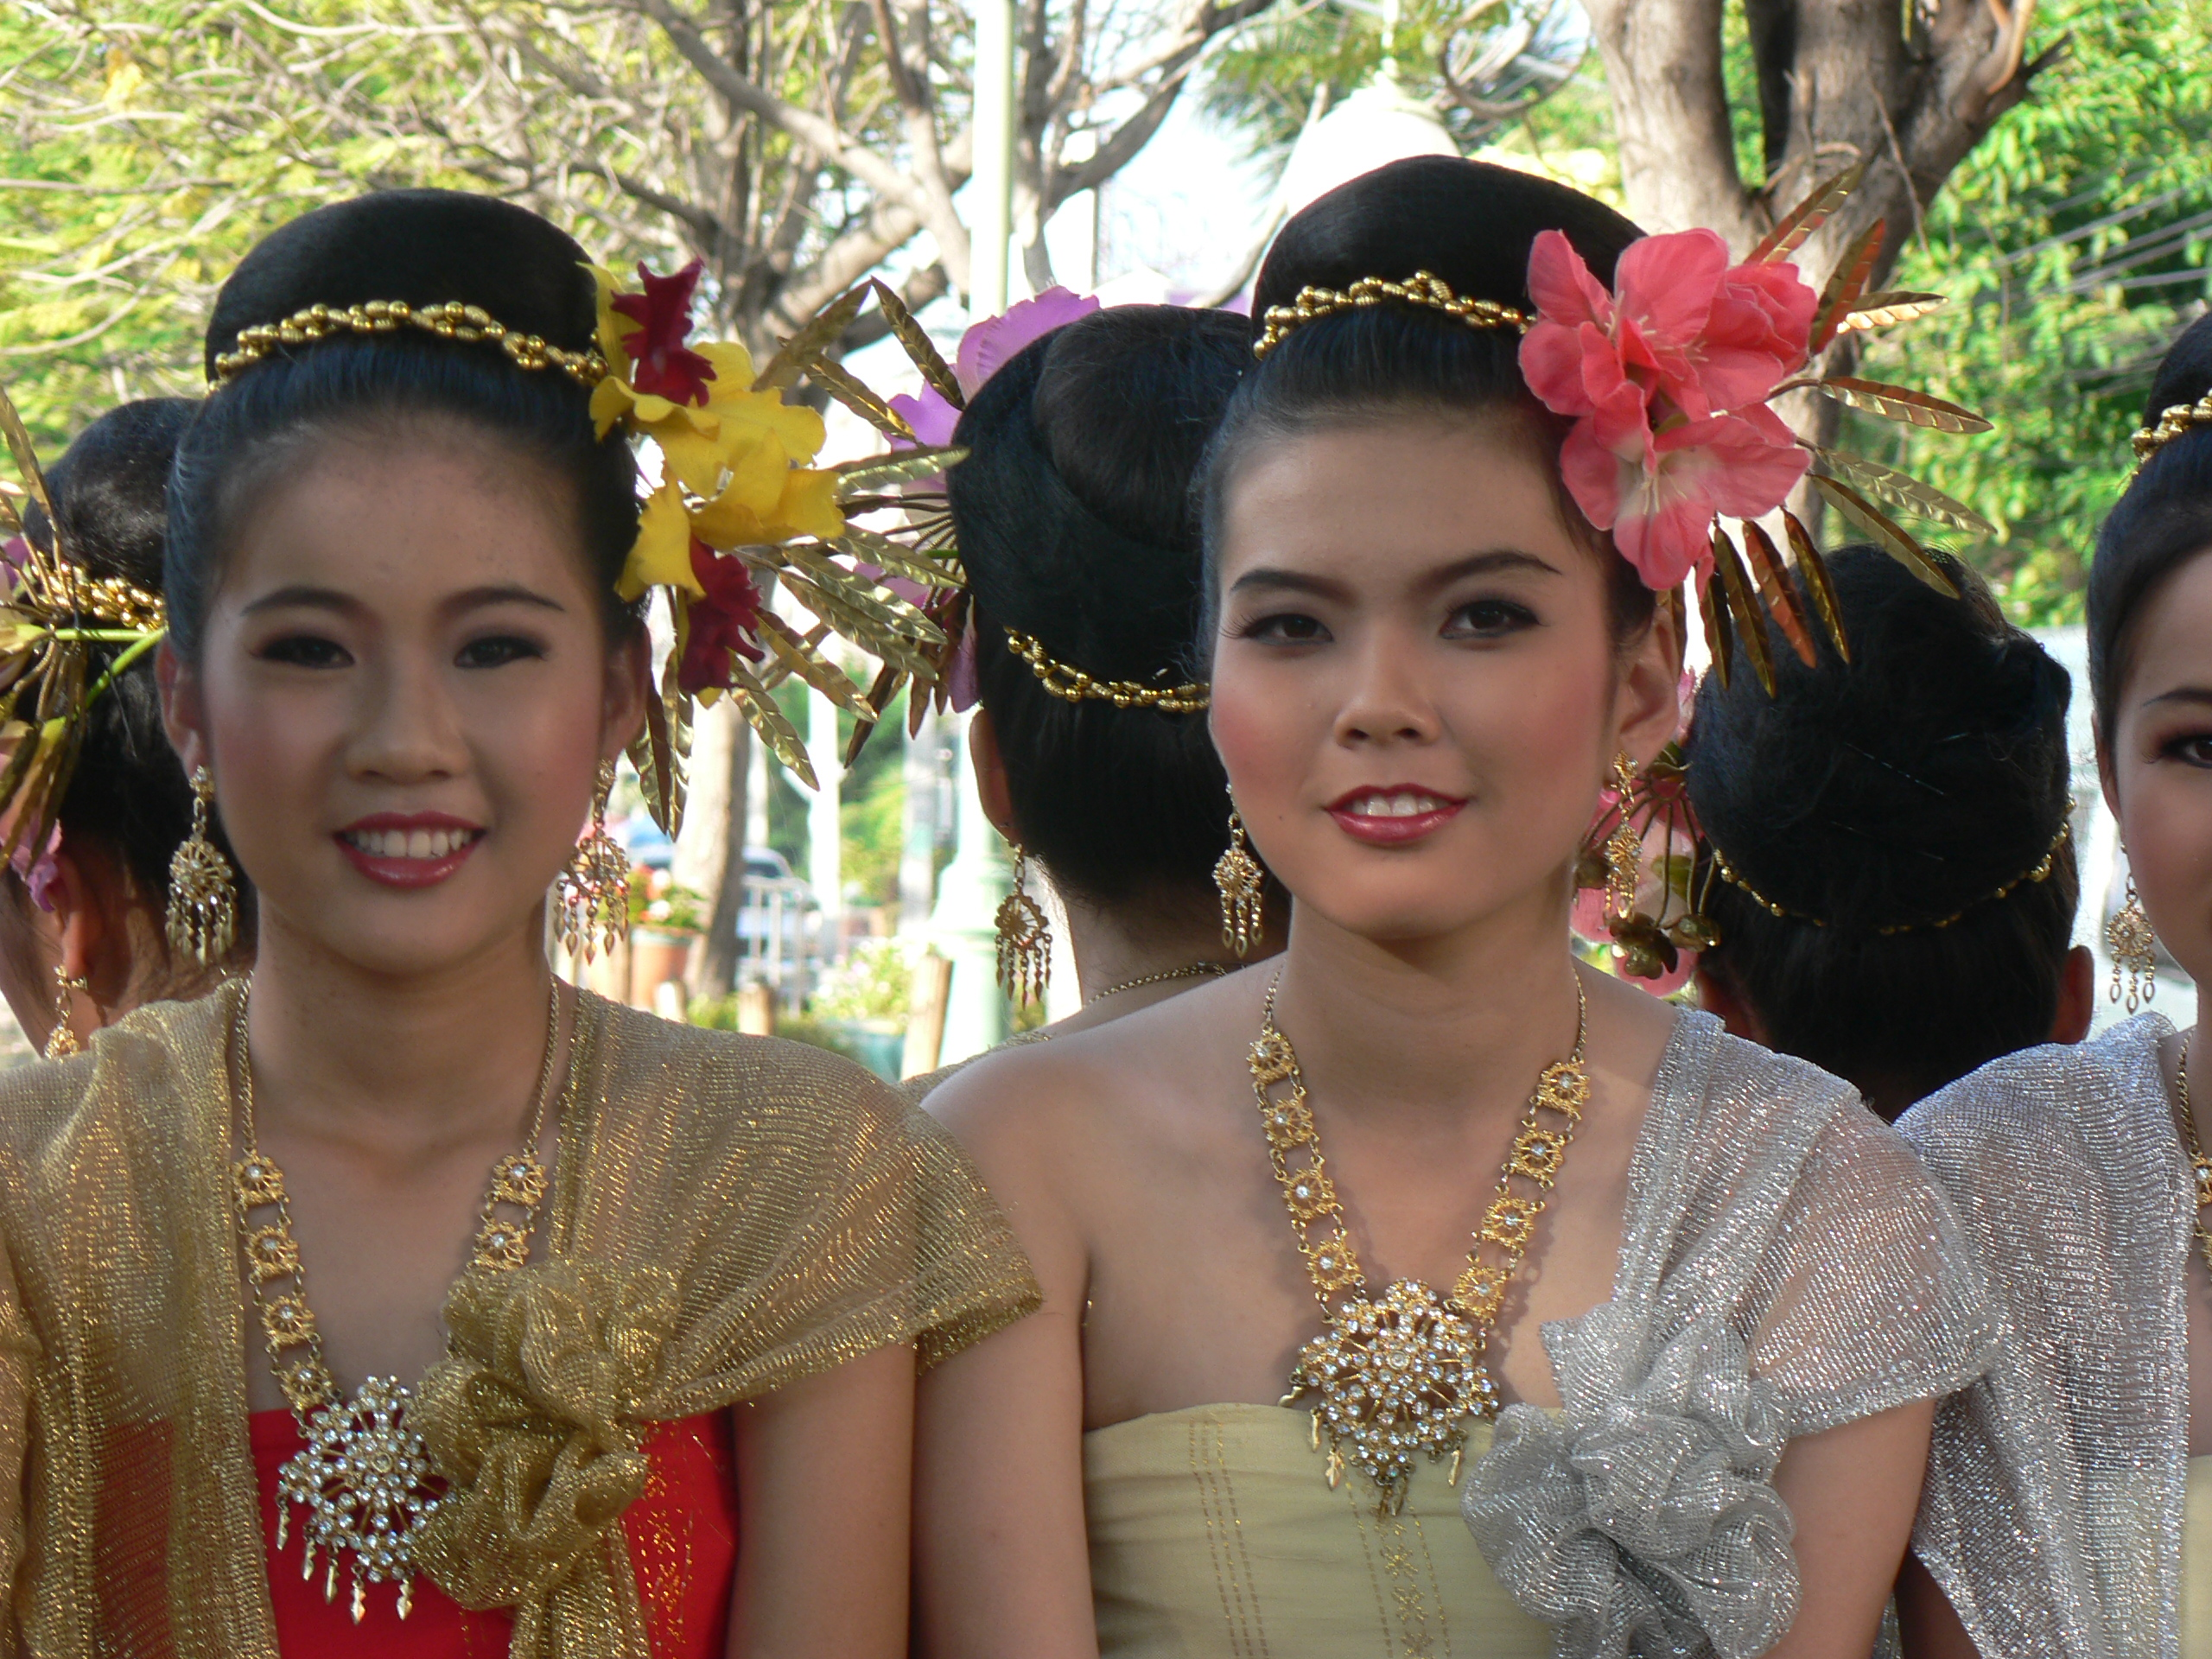 FileThai Girls In Traditional Costumes Chiang Mai 2005 032